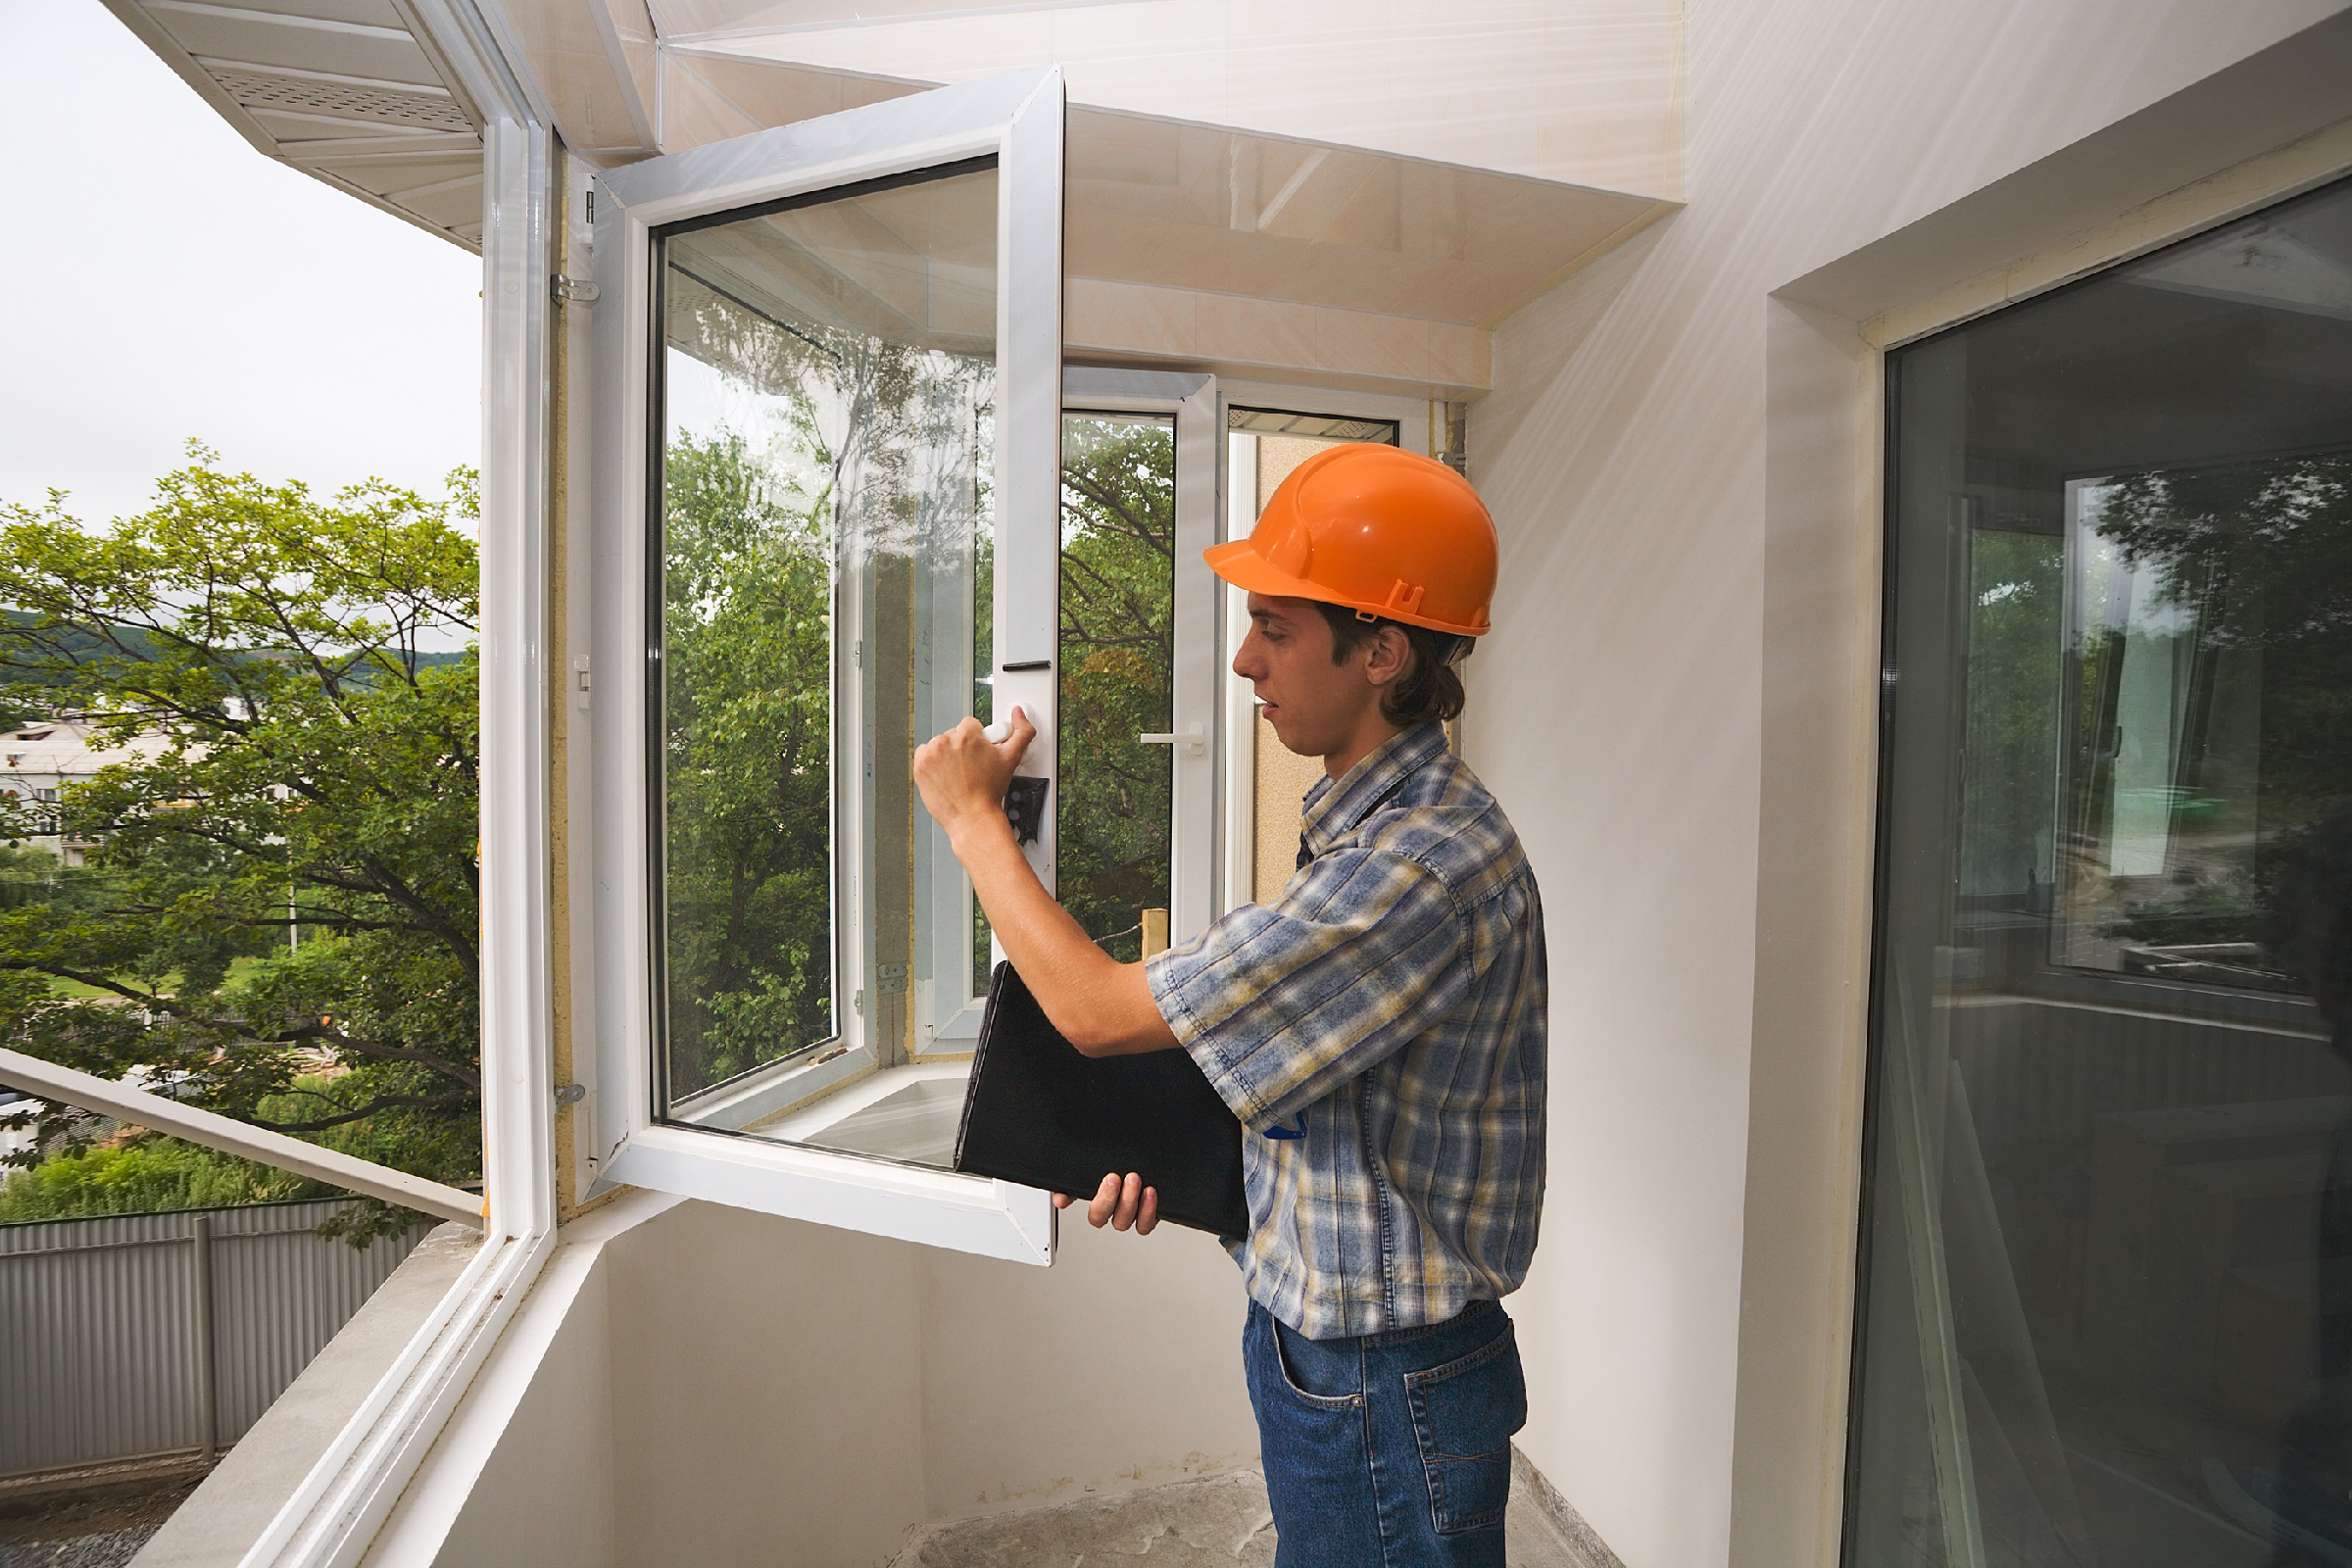 The building inspector checks quality of installation of new windows.